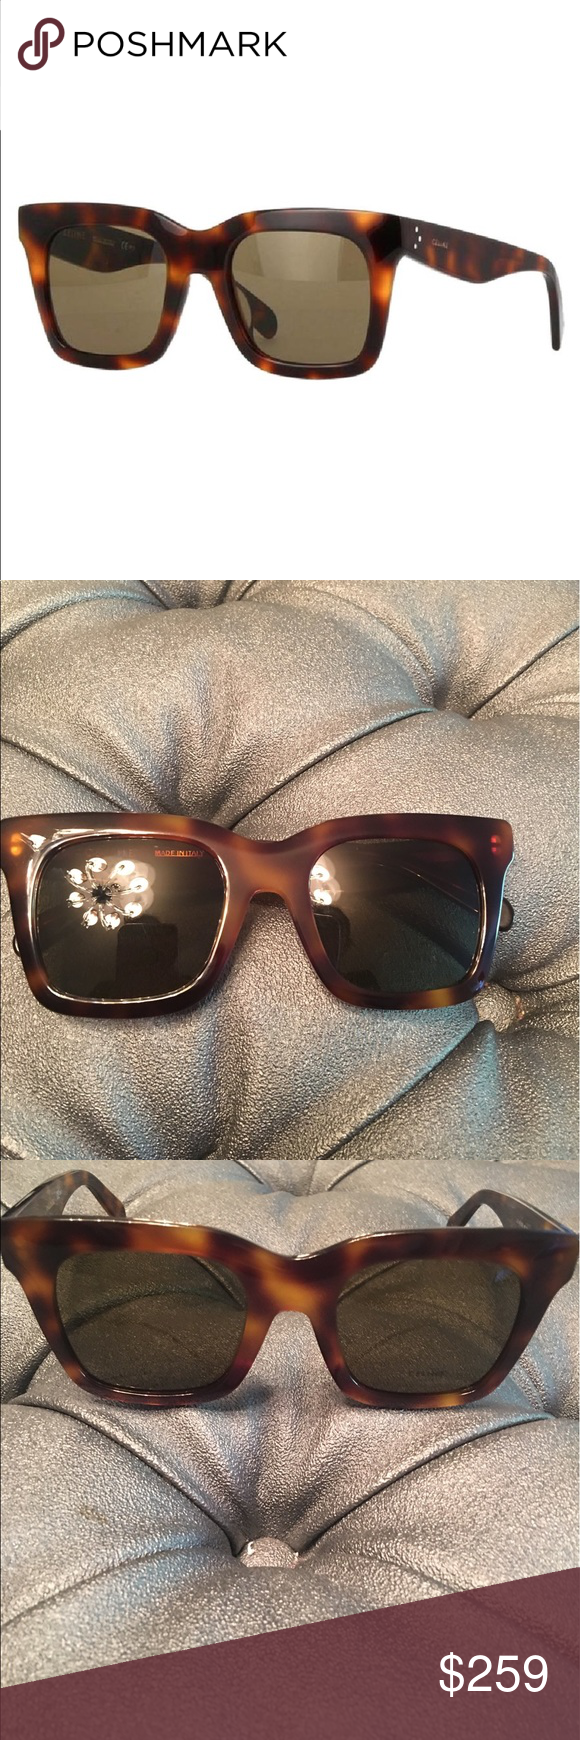 Celine Luca sunglasses Celine CL 41411/F/S Asian Fit sunglasses are great for any occasion. Have been tried on and may have hairline scratches on frame. The elegant color Havana brown makes this pair a great addition to any outfit. Made from Acetate and these stylish sunglasses are perfect for everyday. CL 41411/F/S 50 Asian Fit are truly a must have accessory. Celine soft case and glasses only 100% UV protection Celine Accessories Sunglasses